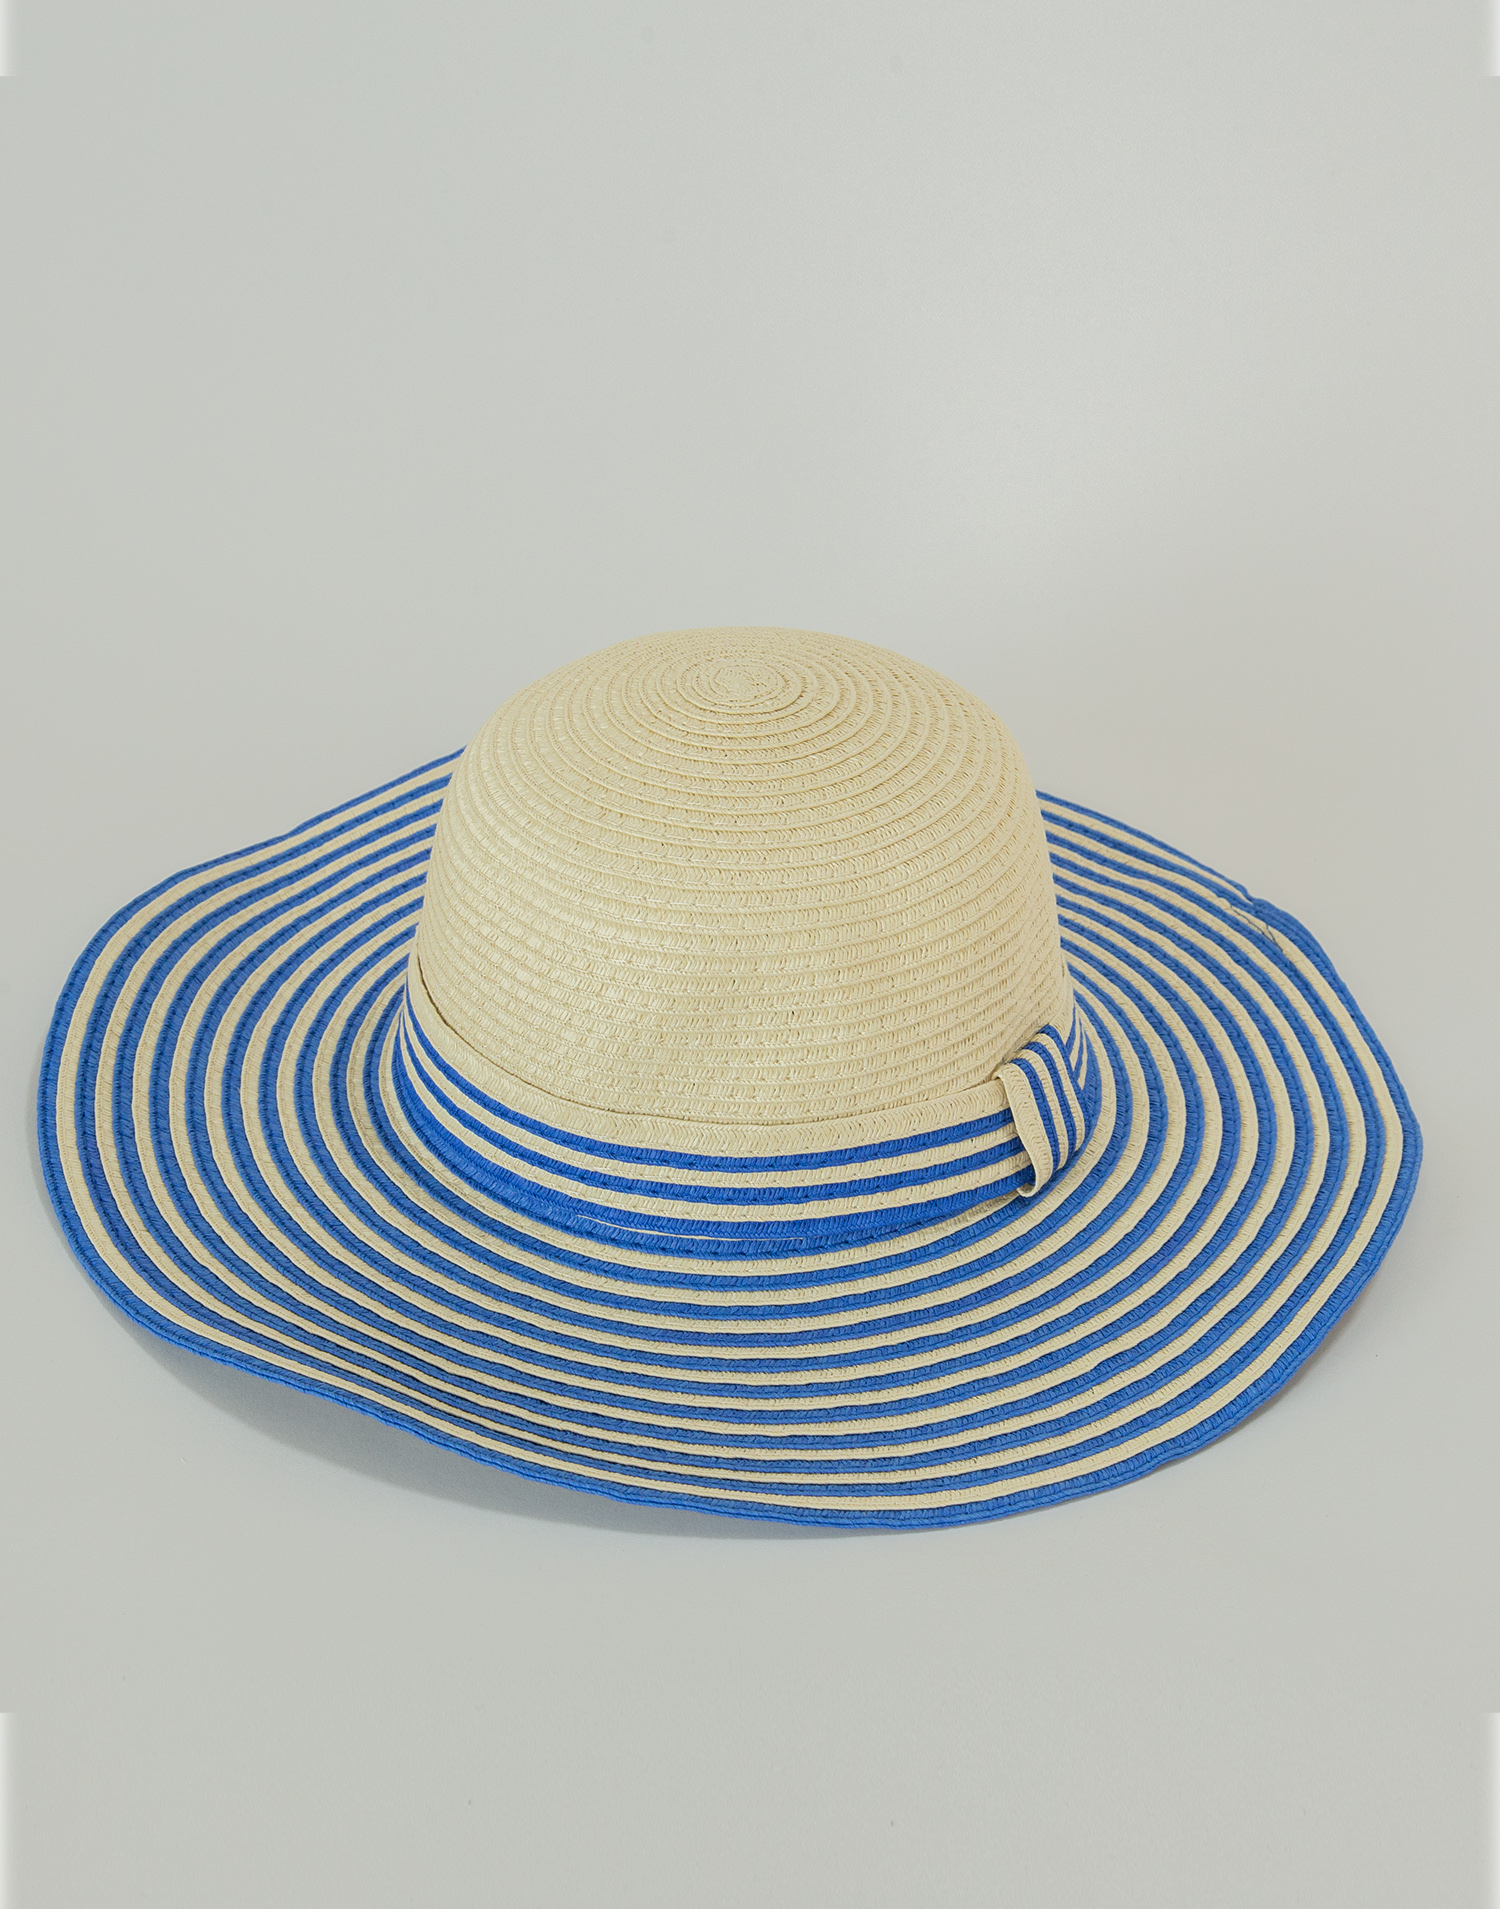 Two-tone brim hat